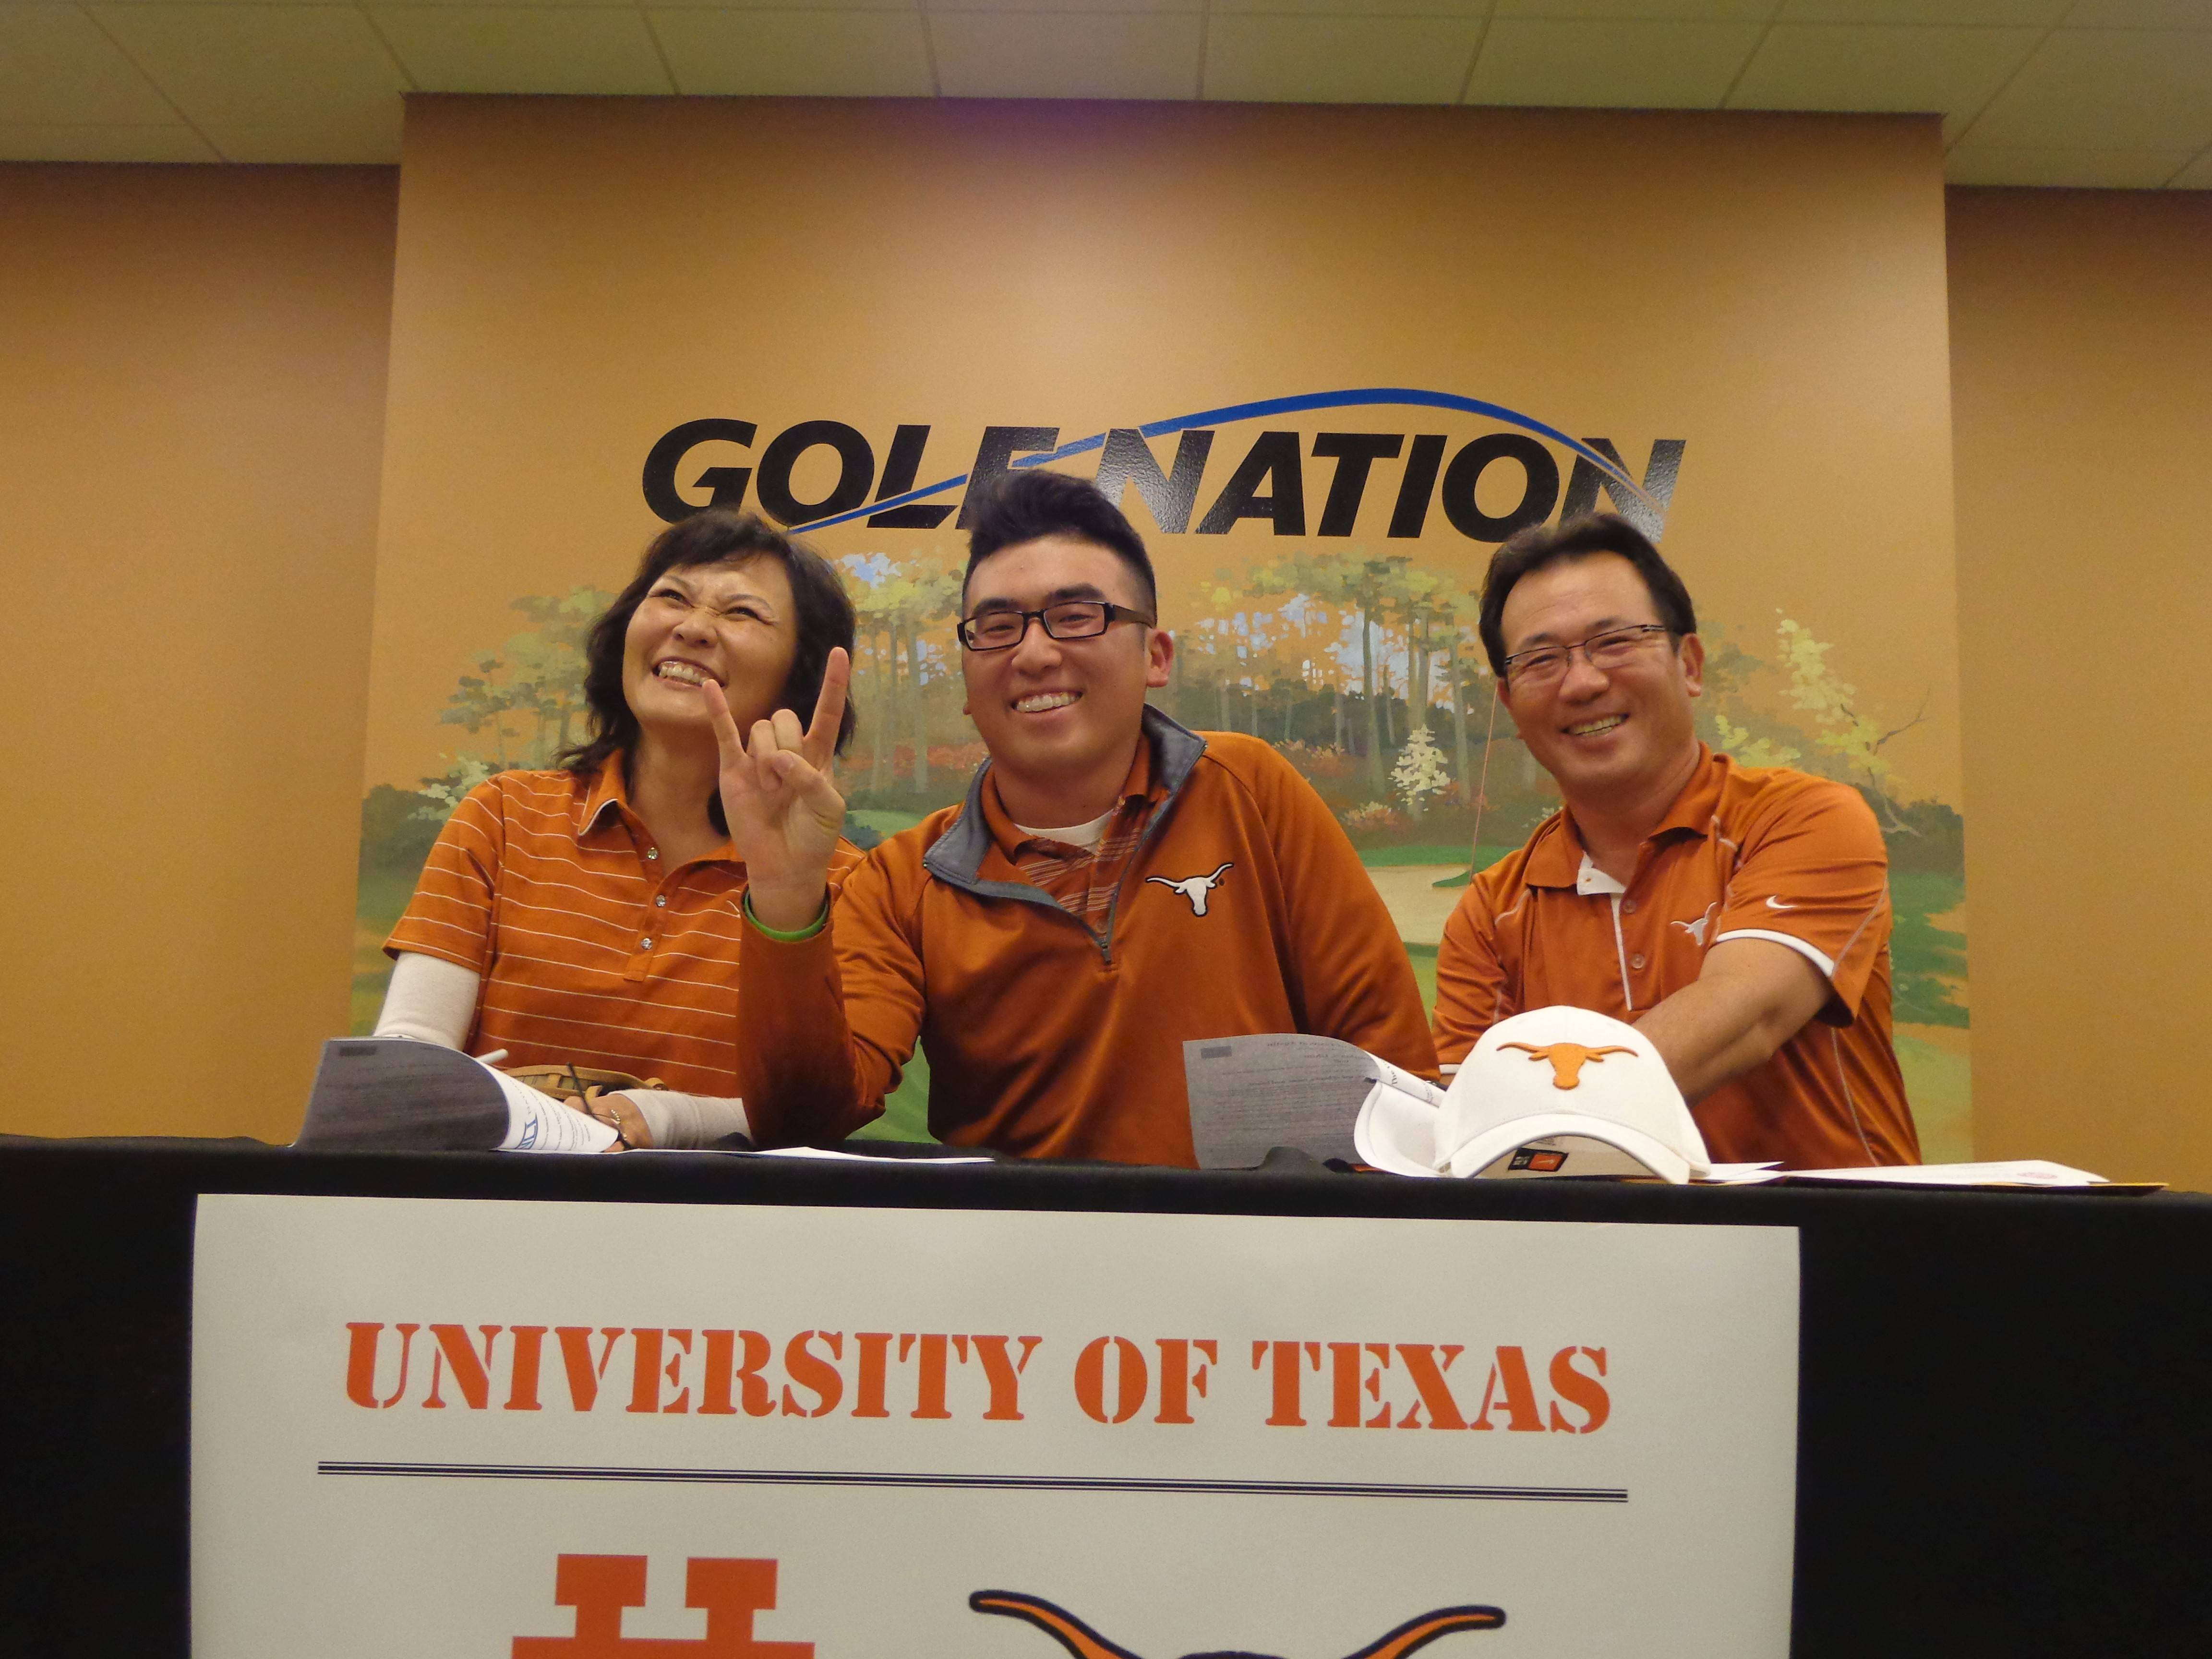 Doug Ghim, center, recently won an American Junior Golf Association tournament and is ranked No. 5 among top juniors. The Arlington Heights native will be a freshman on the University Texas golf team this fall.